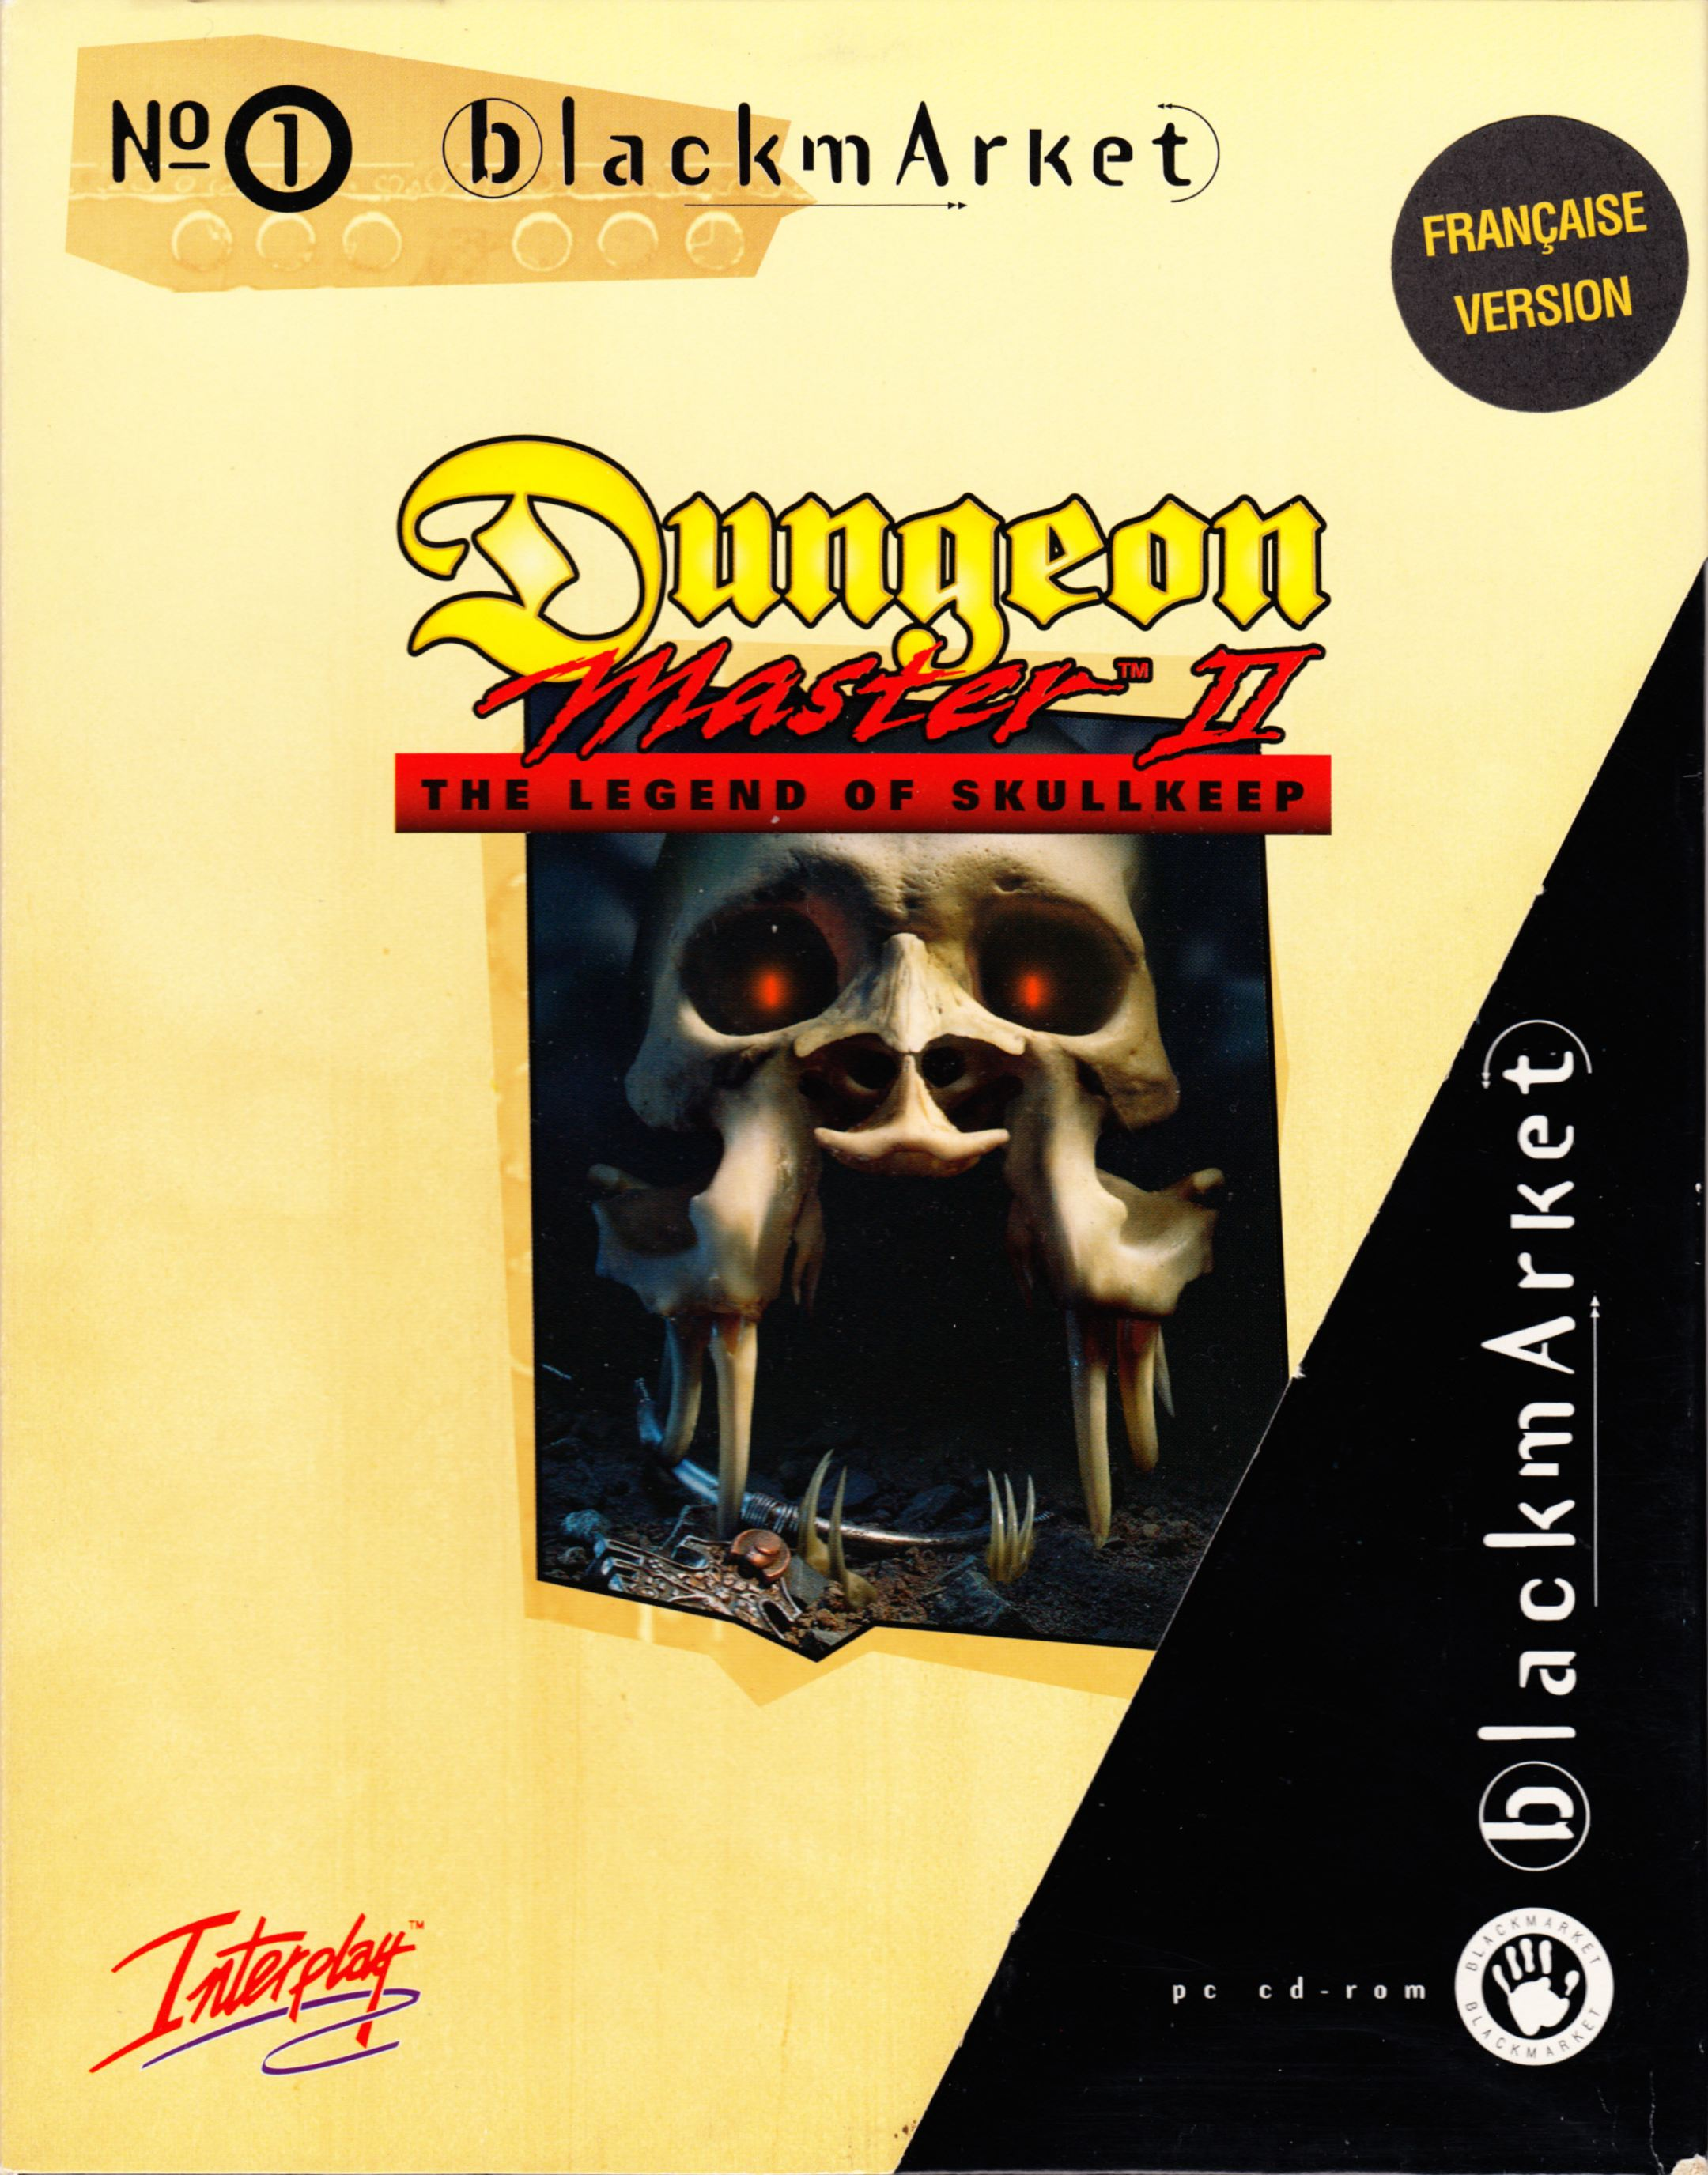 Game - Dungeon Master II - FR - PC - Blackmarket With Manual - Box With Sleeve With Sticker - Front - Scan